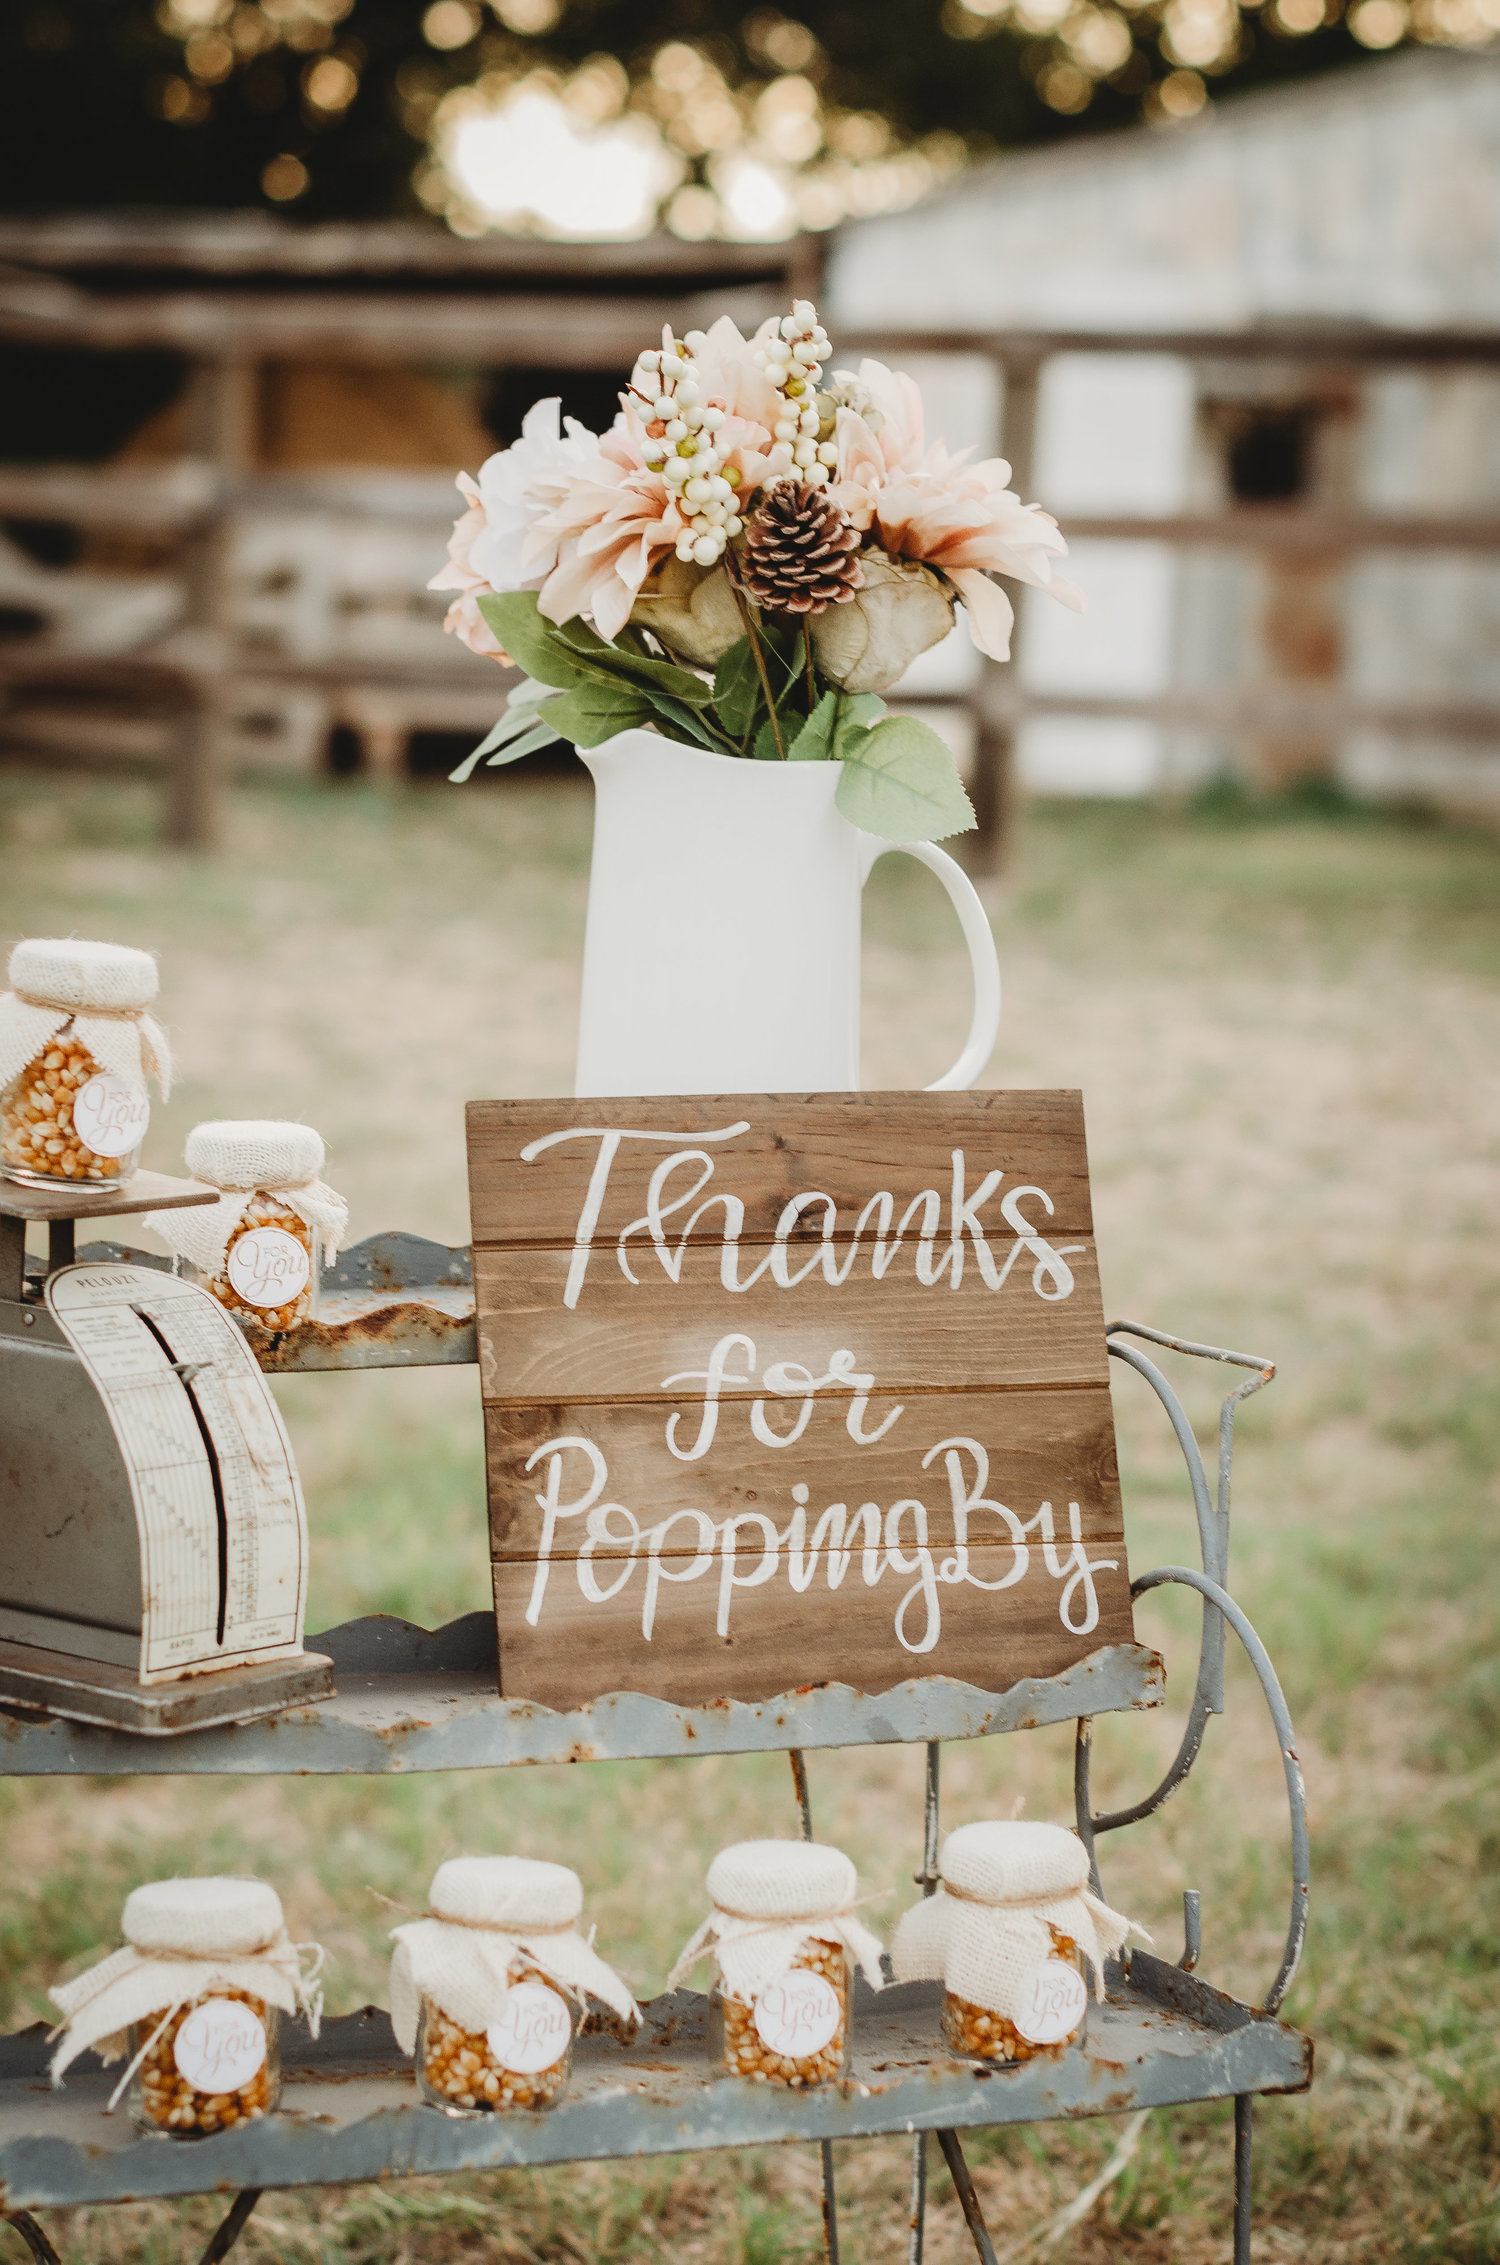 "Giving our popcorn as your party favor? Easily create a wooden sign that reads ""Thanks for Popping by"" as the party decor. Click to see even more rustic party ideas from this fall themed bridal shower. Created by party stylist Mint Event Design. #bridalshowers #bridalshowerideas #rusticwedding #rusticbridalshower #bridalshowerdecor #farmwedding #partyideas #fallbridalshower #woodensign"